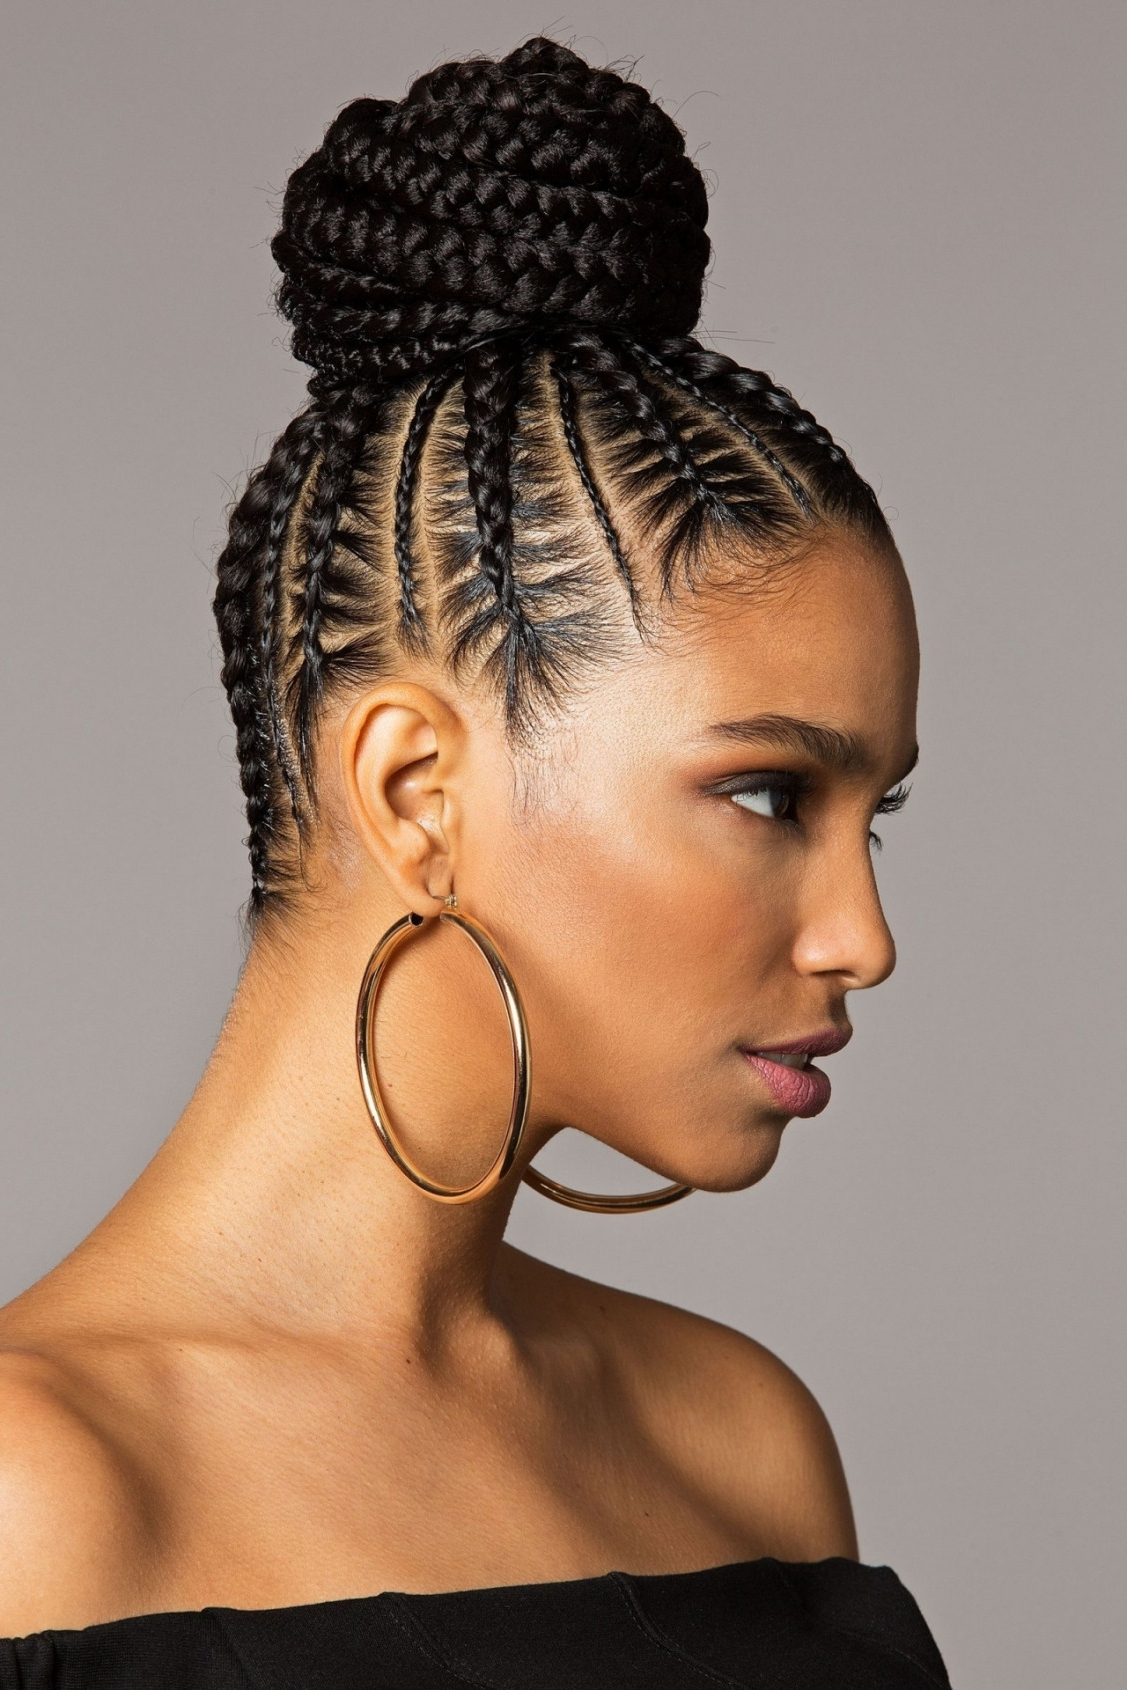 15 Best Collection of Black Braided Bun Updo